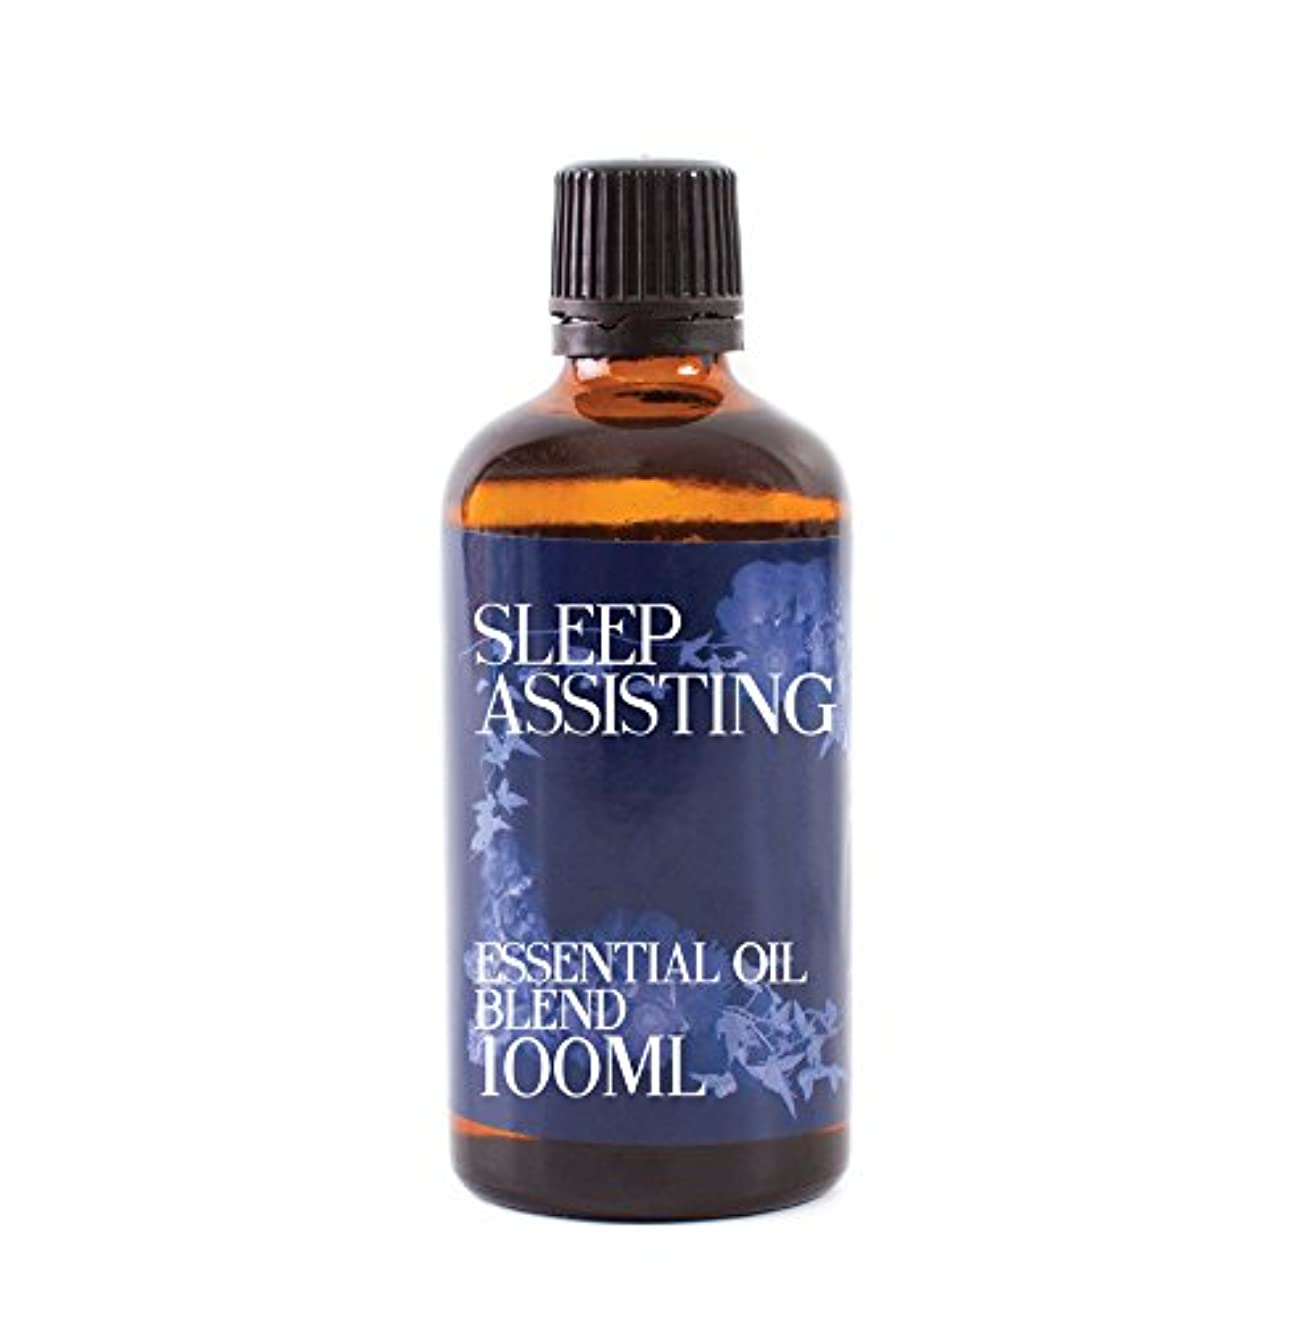 オフセット立方体サラダMystix London | Sleep Assisting Essential Oil Blend - 100ml - 100% Pure